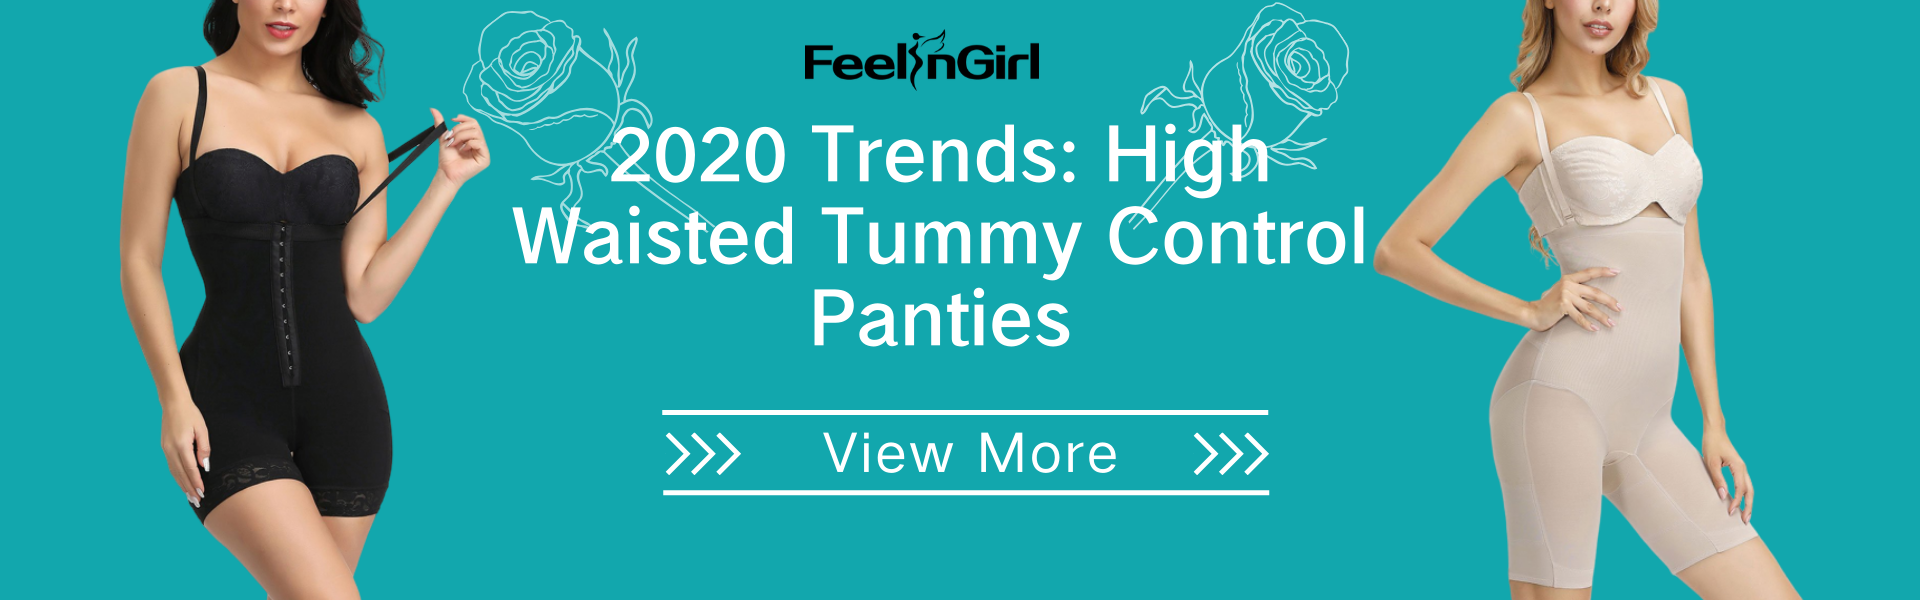 2020 Trends: High Waisted Tummy Control Panties